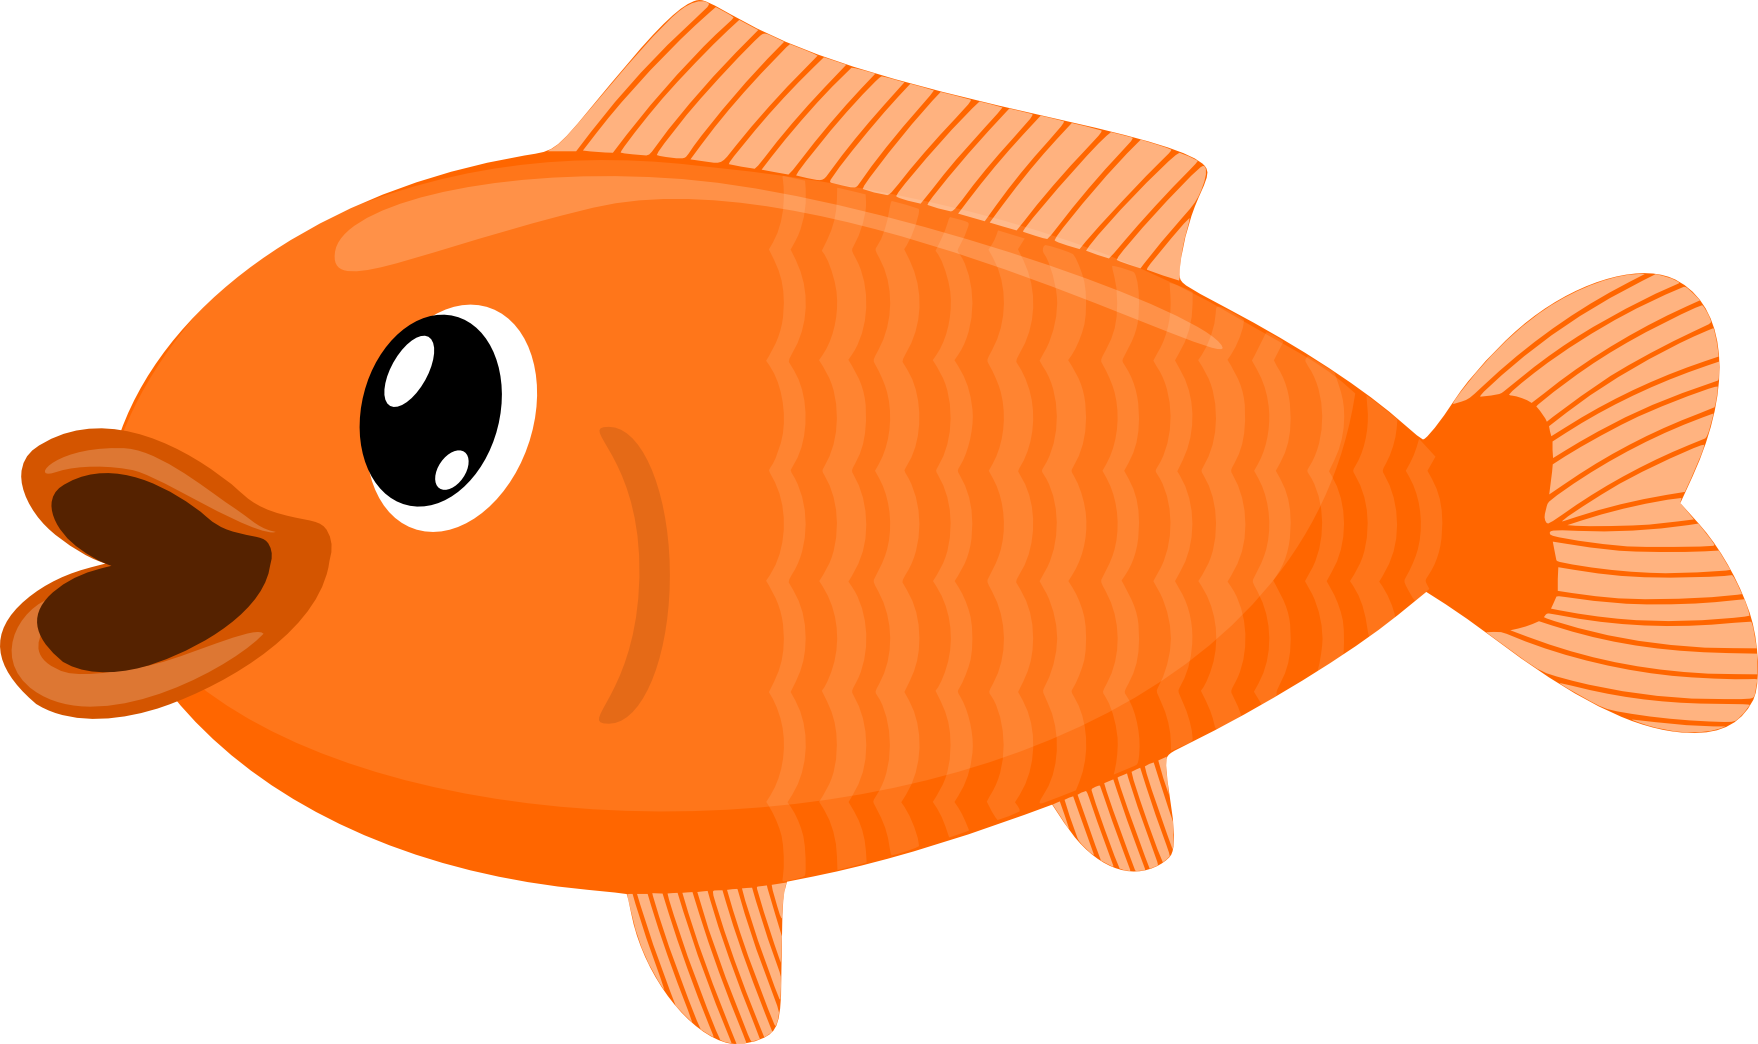 Red fish clipart clip art transparent download Koi Fish Clipart at GetDrawings.com | Free for personal use Koi Fish ... clip art transparent download